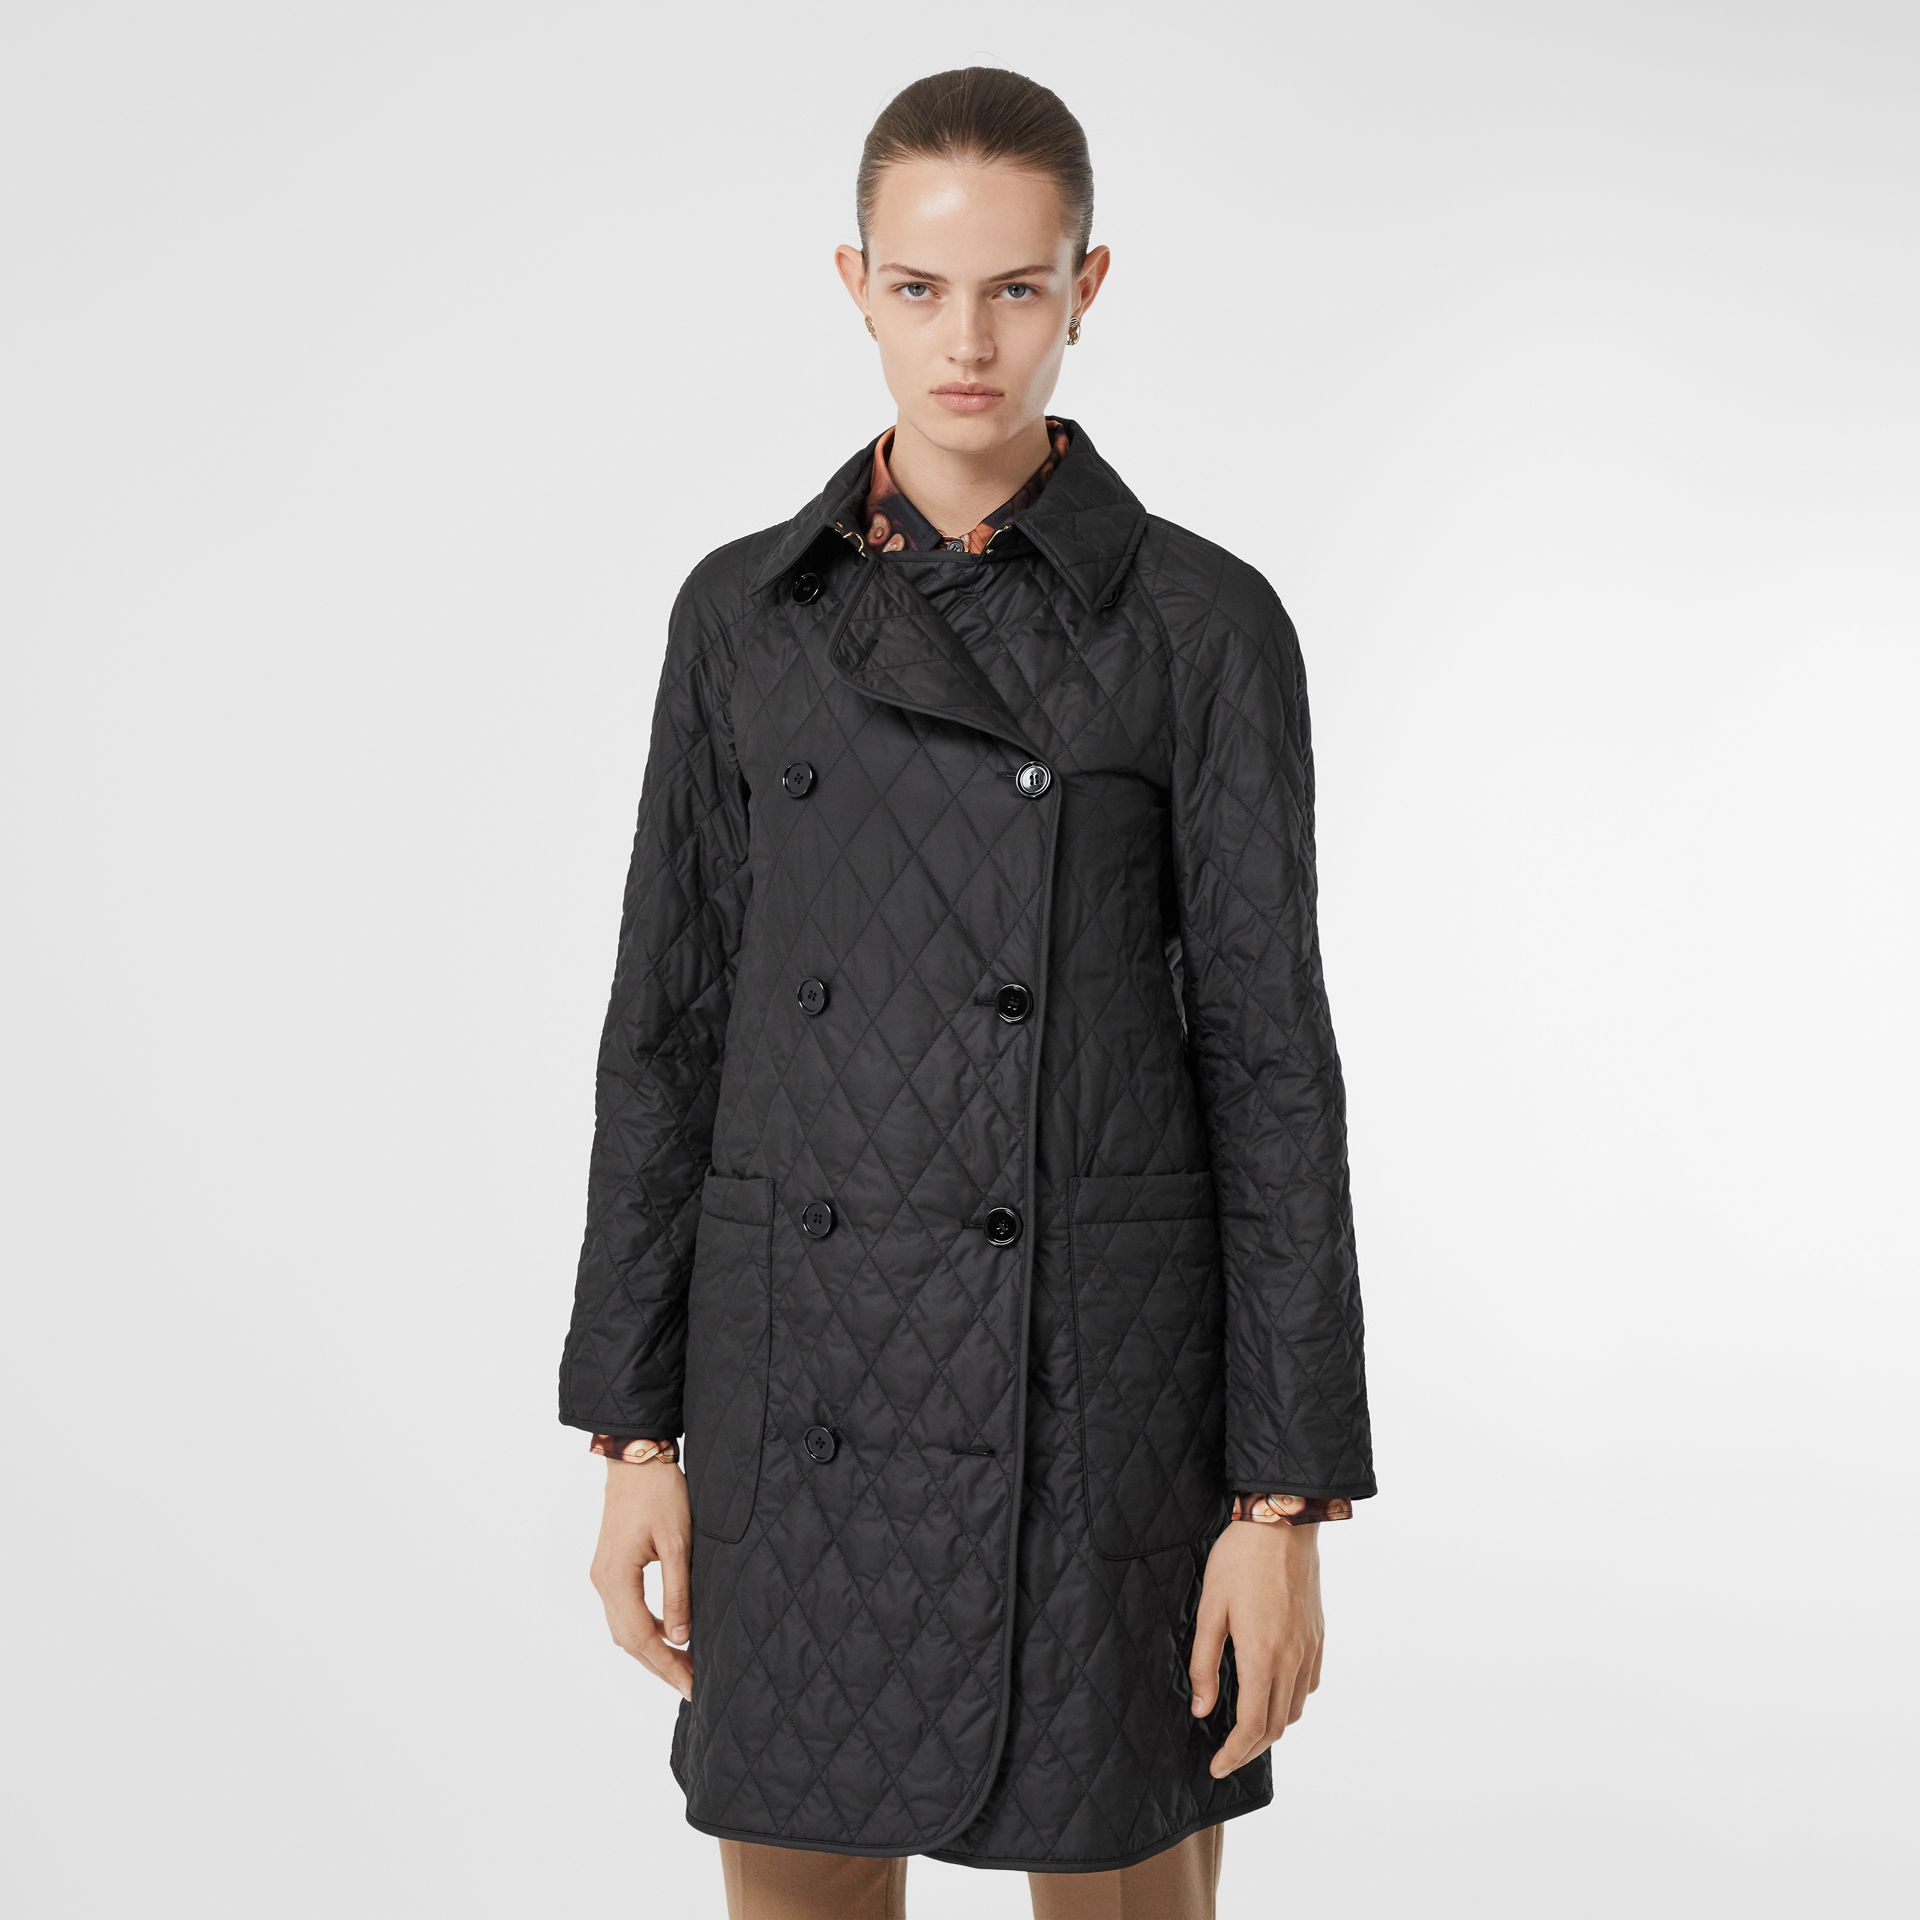 Diamond Quilted Double-breasted Coat in Black - Women | Burberry - gallery image 6